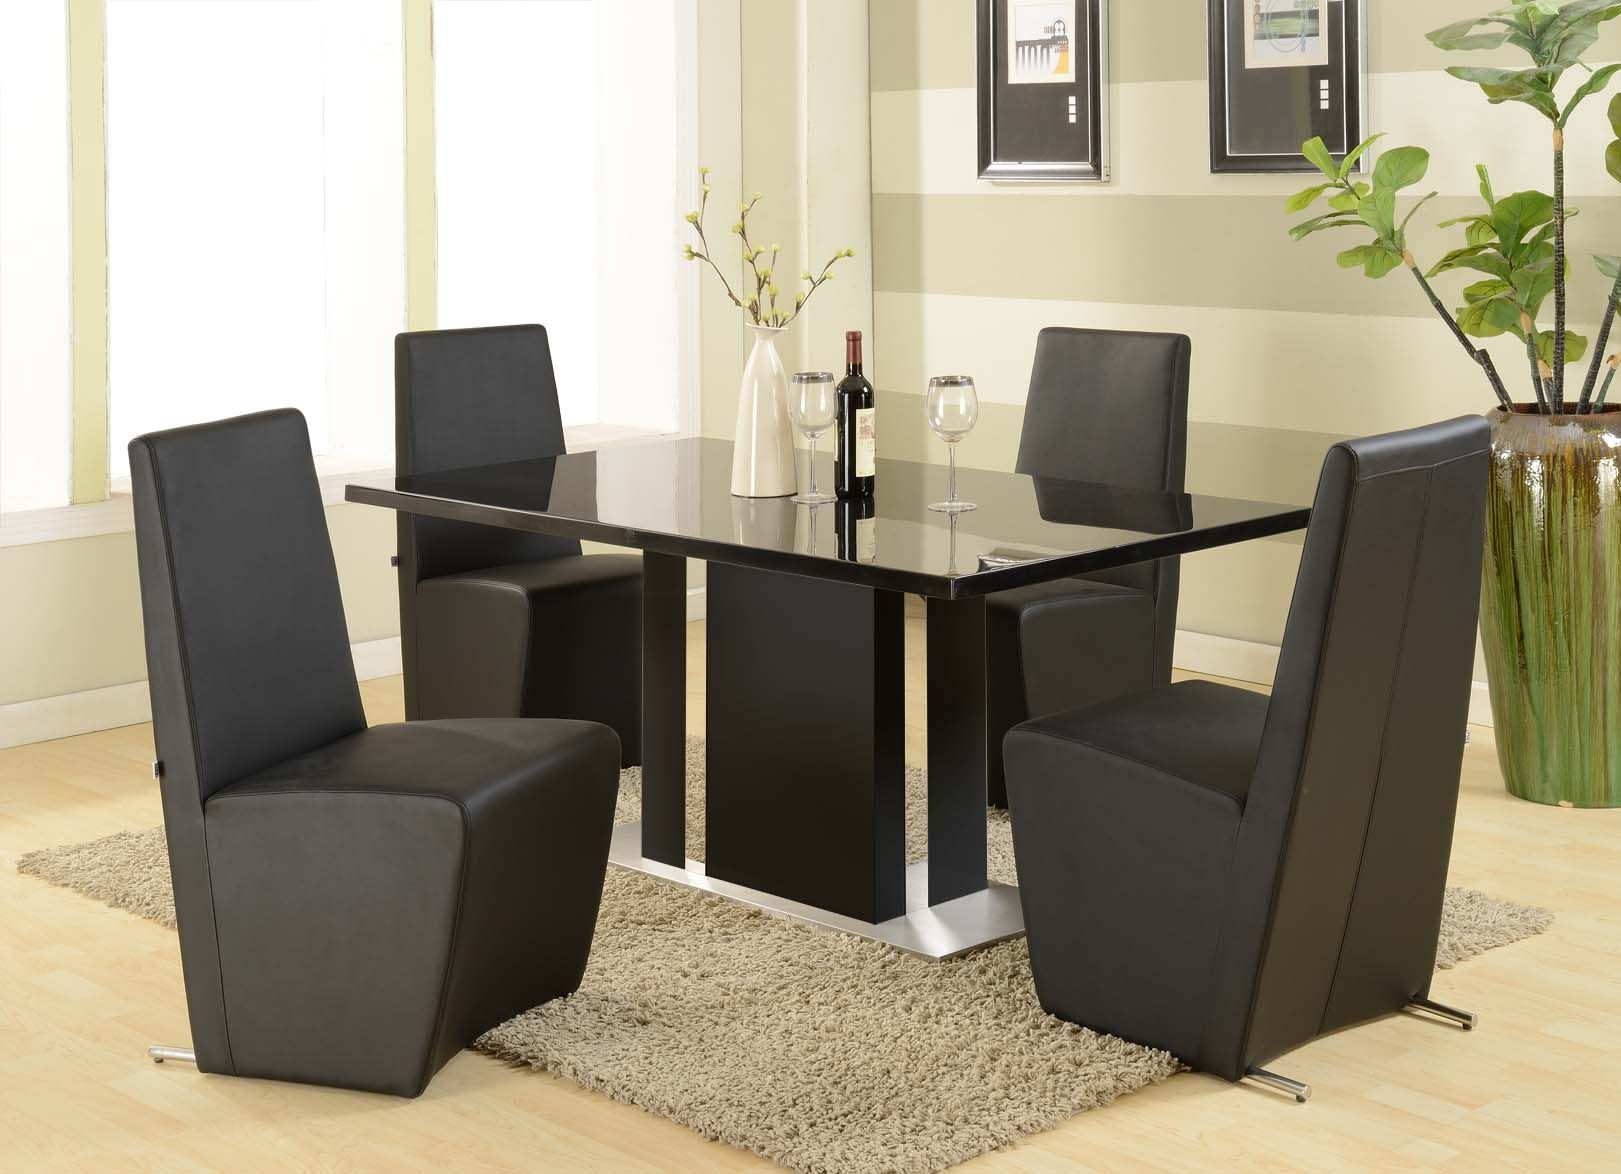 Charming Modern Table And Chair Set Part - 9: Dining Room, Ultra Modern Dining Sets Dining Set Marble Table Top Black  Leather Upholstered Dining Chair Beige Fur Rug Ceramic Pant Pot: 4 Styles  Of Kitchen ...